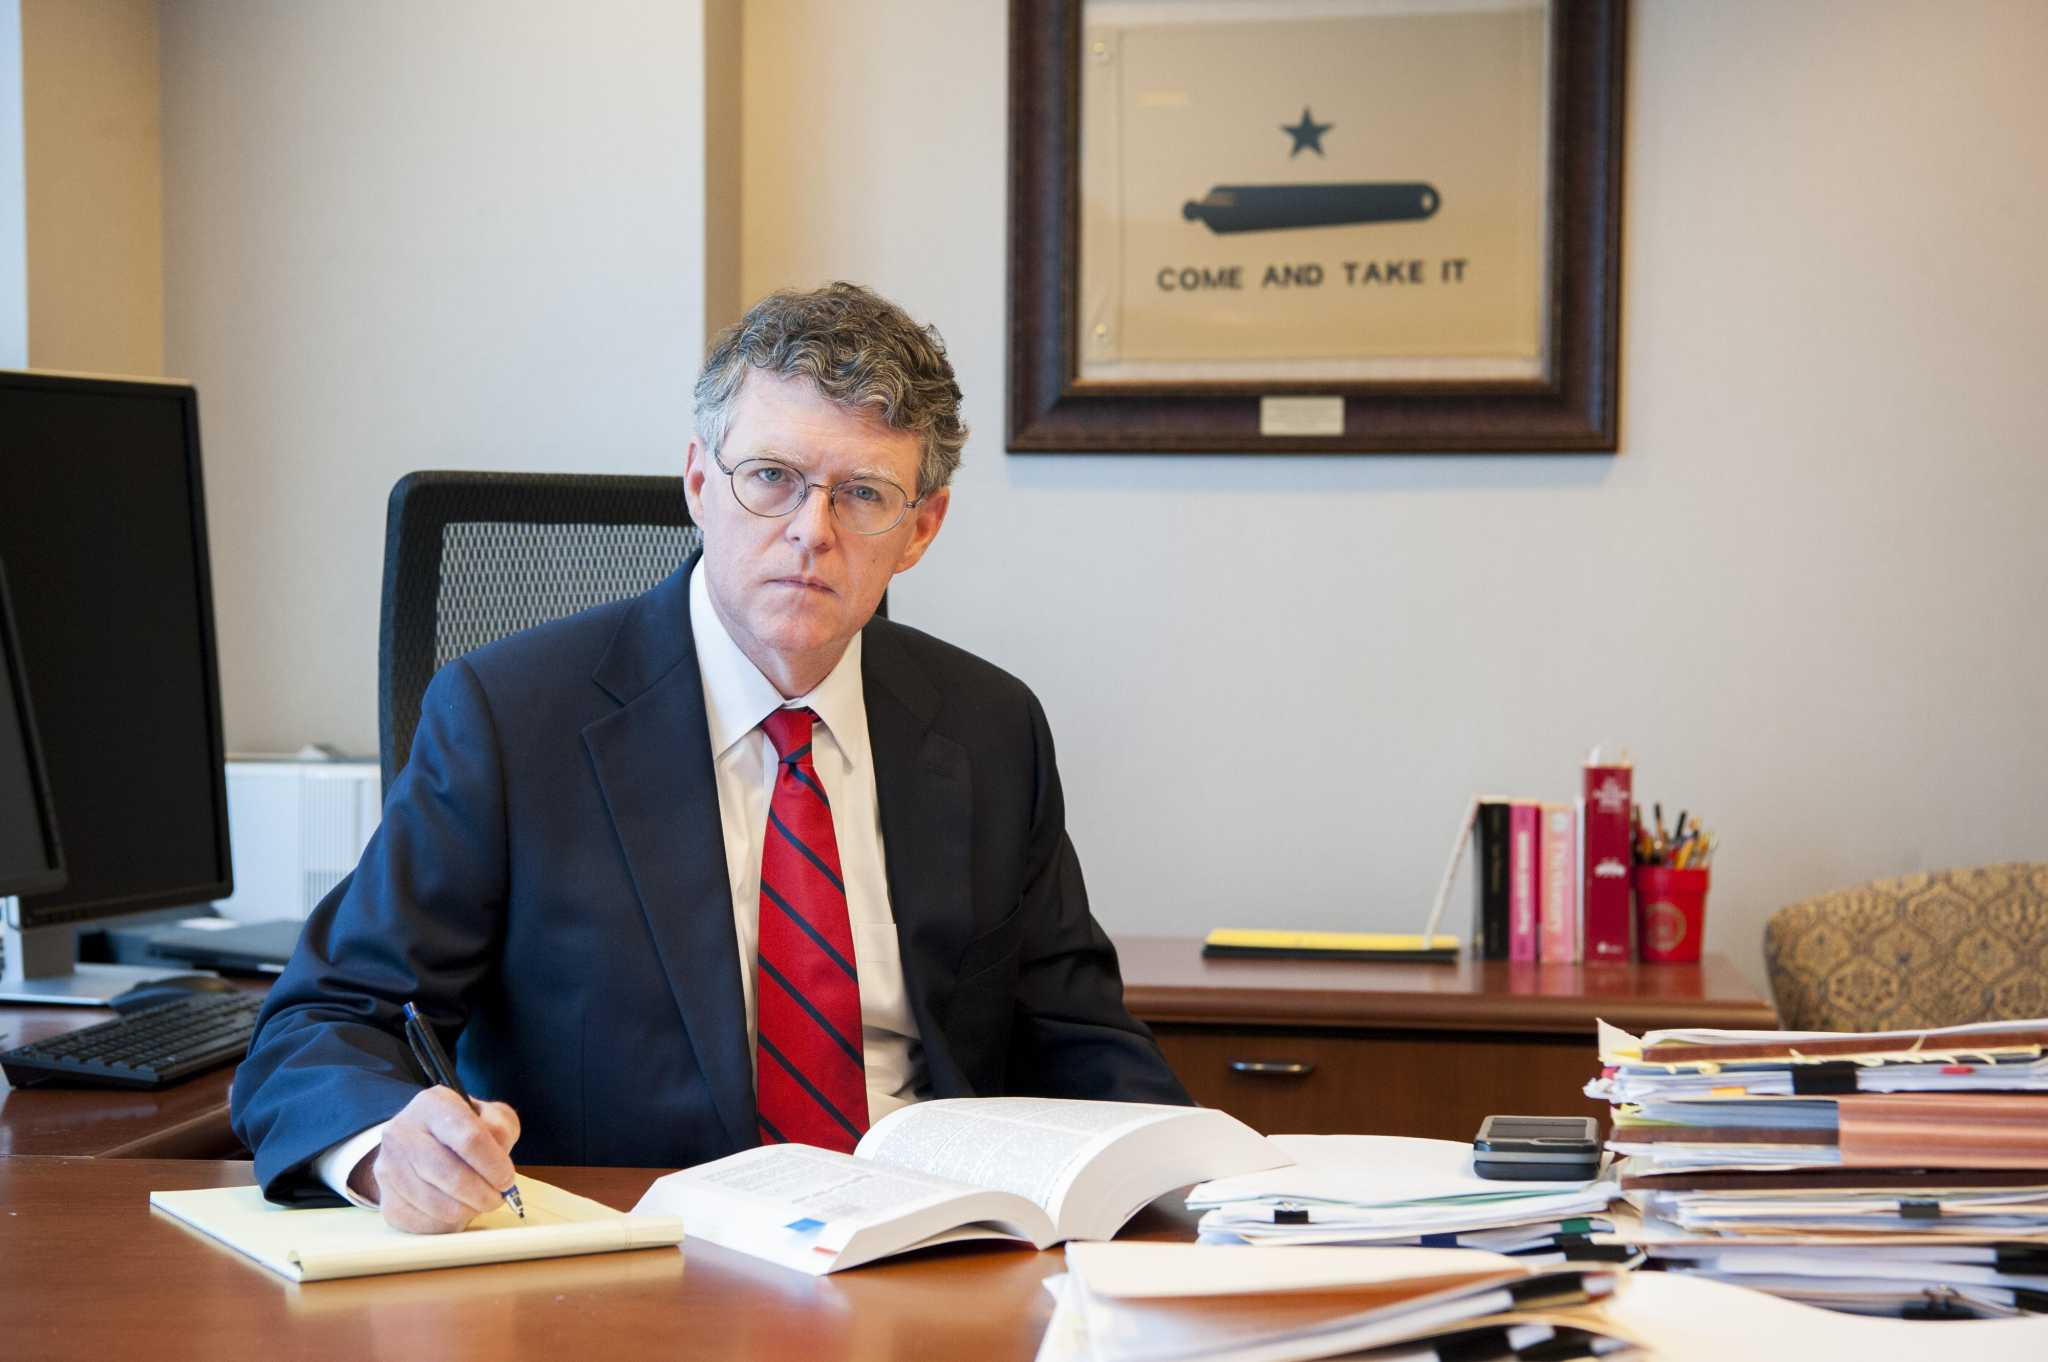 McNamee, longtime Texas GOP attorney, will step down from FERC